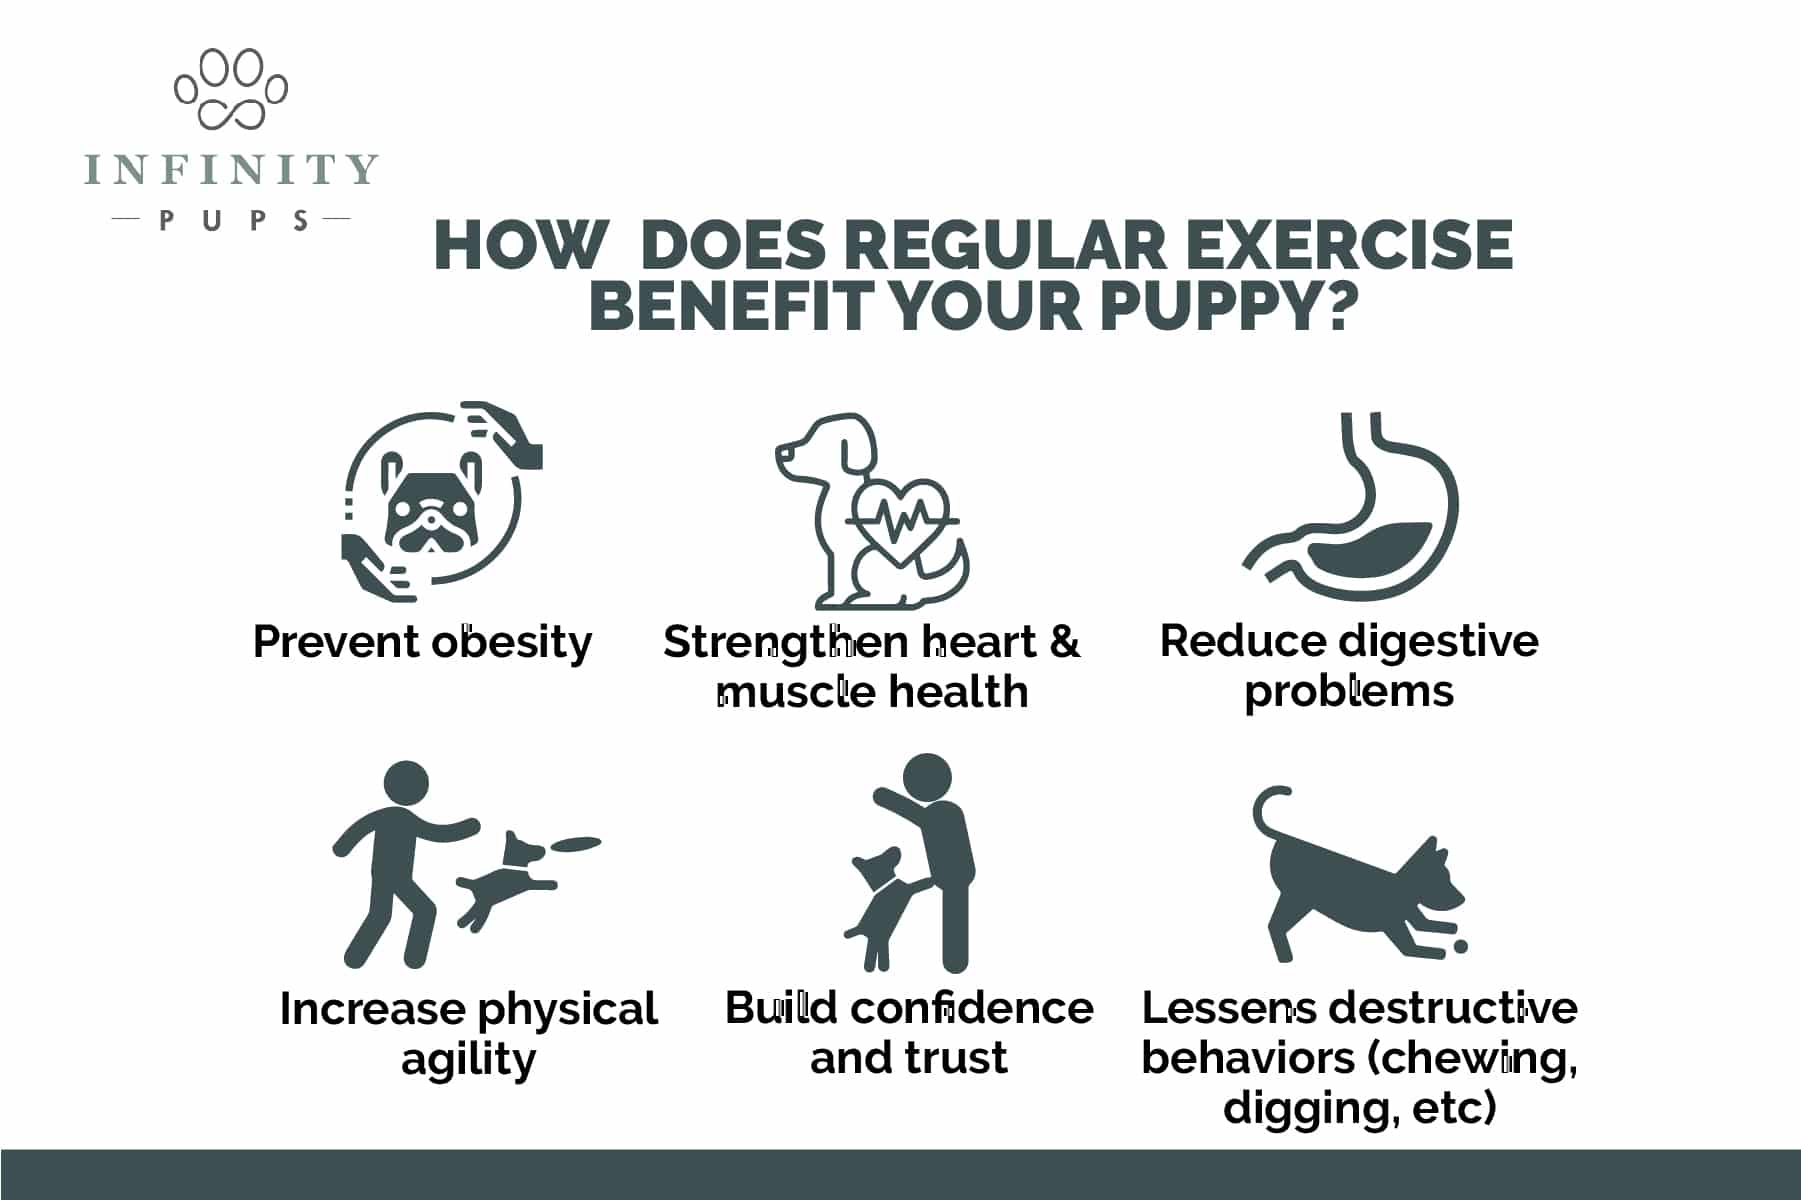 6 ways regular exercise benefits your puppy